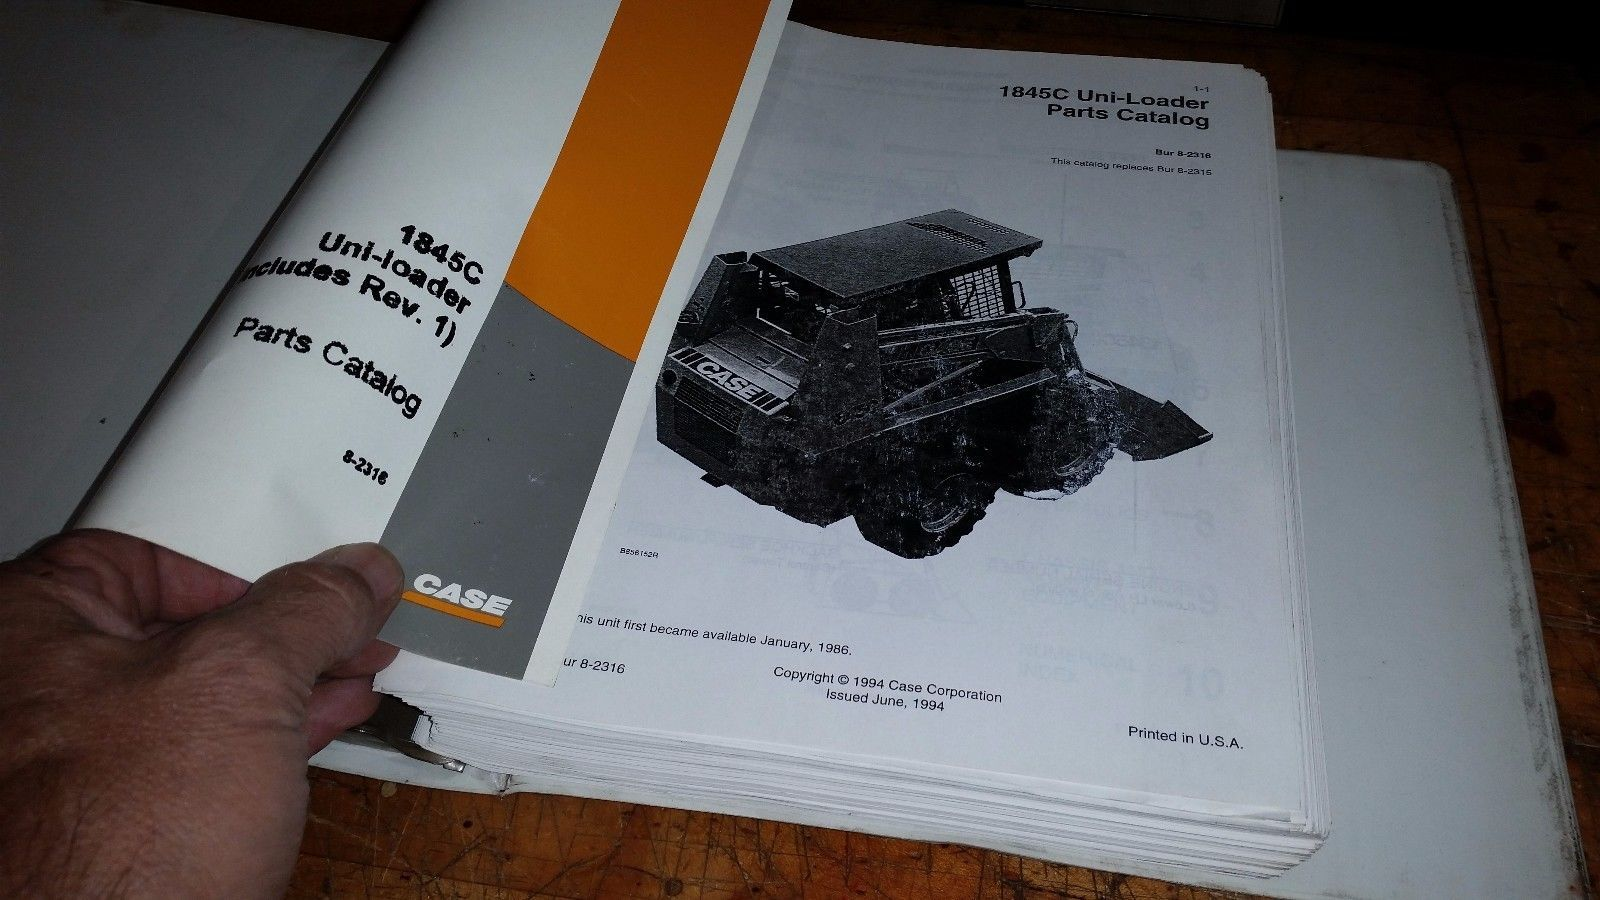 CASE 1845C UNI-LOADER PARTS CATALOG Manual Book